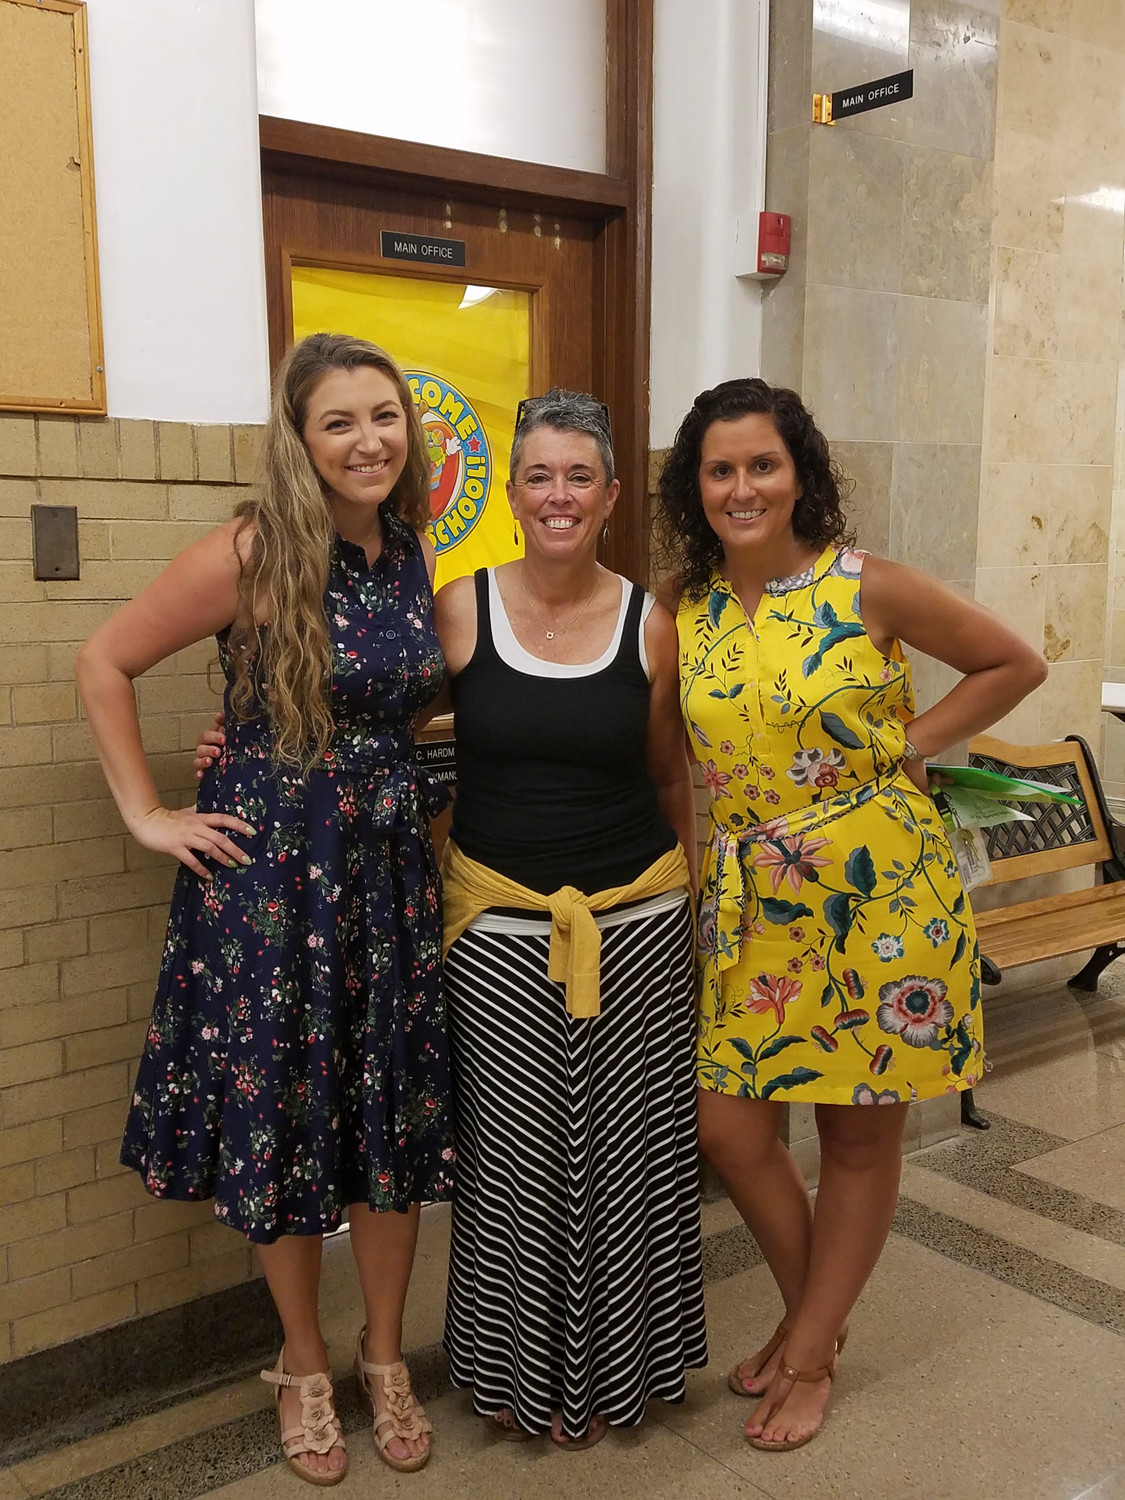 Polk Street School teachers Jenine Giacopelli, Marybeth Magan and Victoria Vitulli greeted their students for another year of instruction.